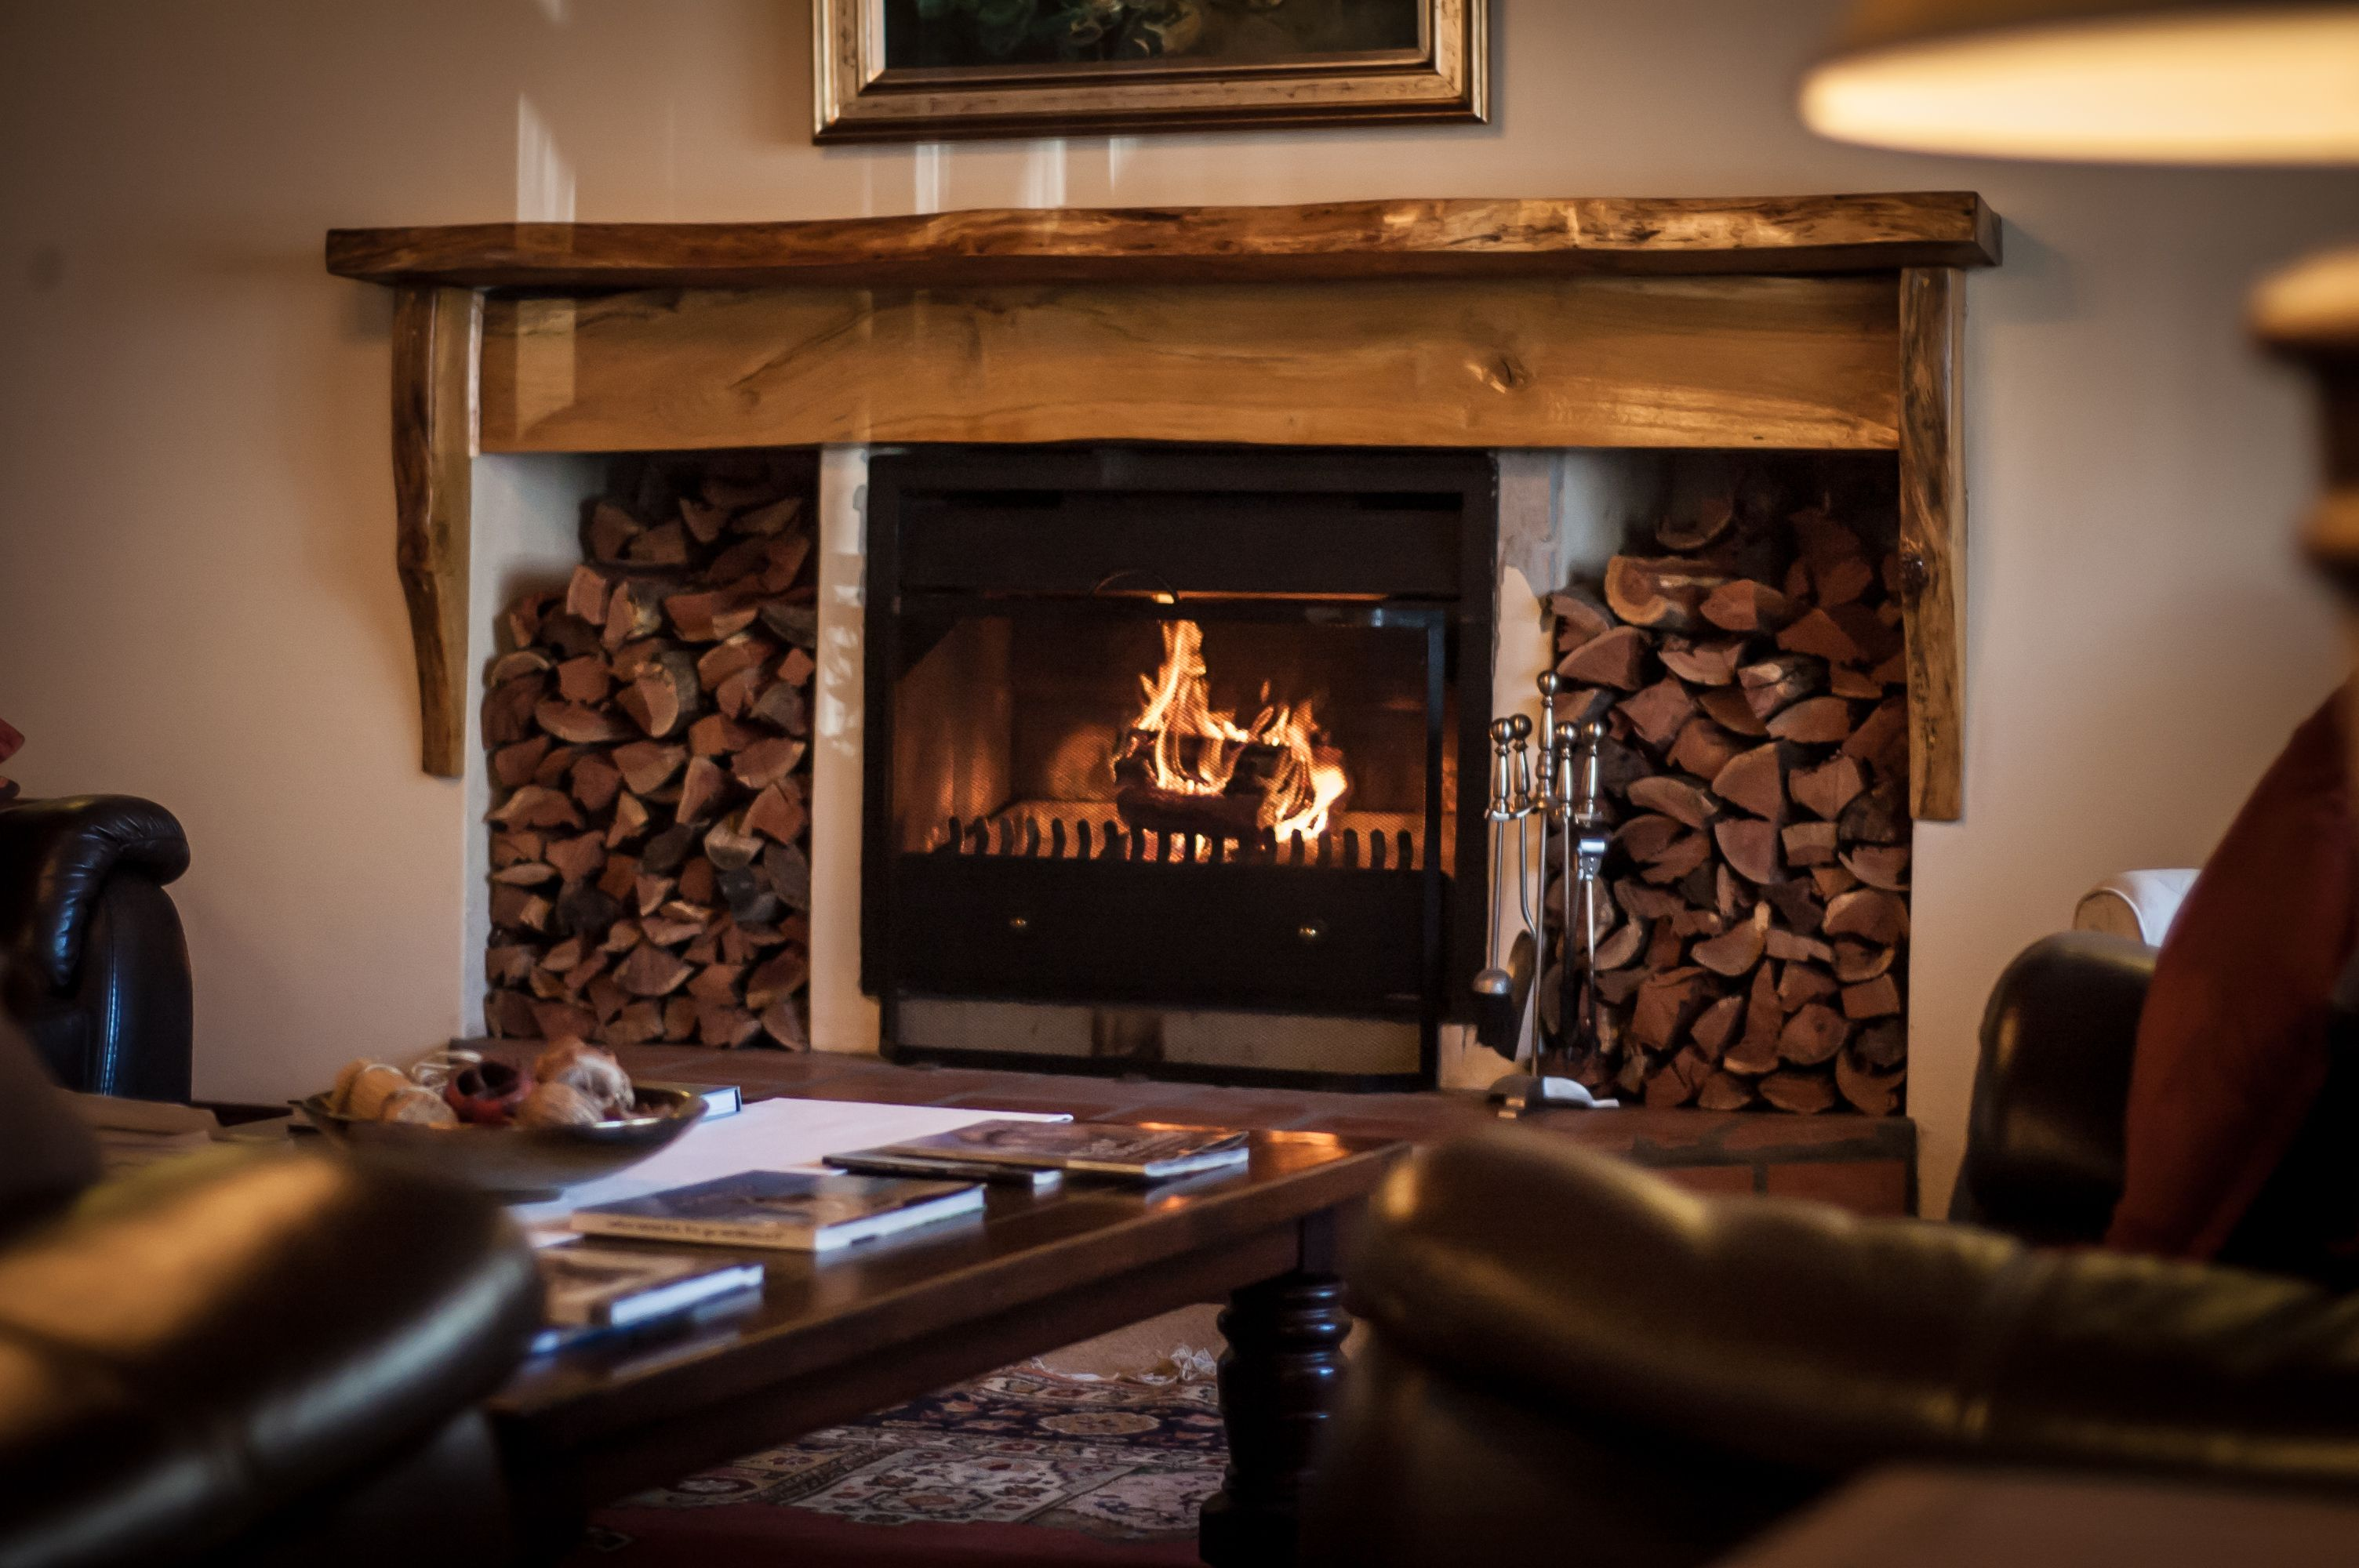 cozy winter getaways beat the chill with our fireside collection